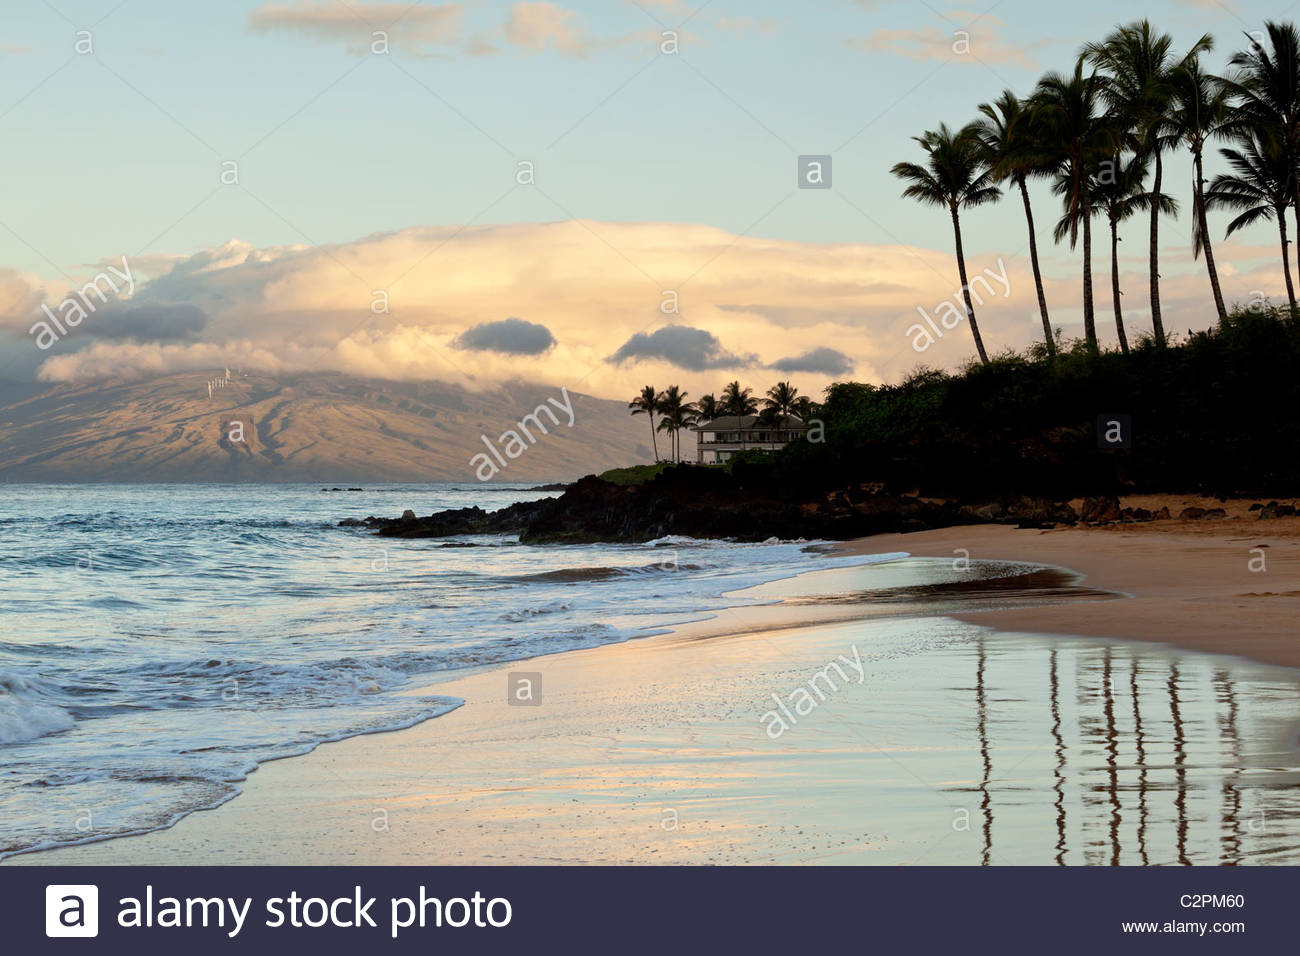 morning-on-poolenalena-beach-in-makena-c